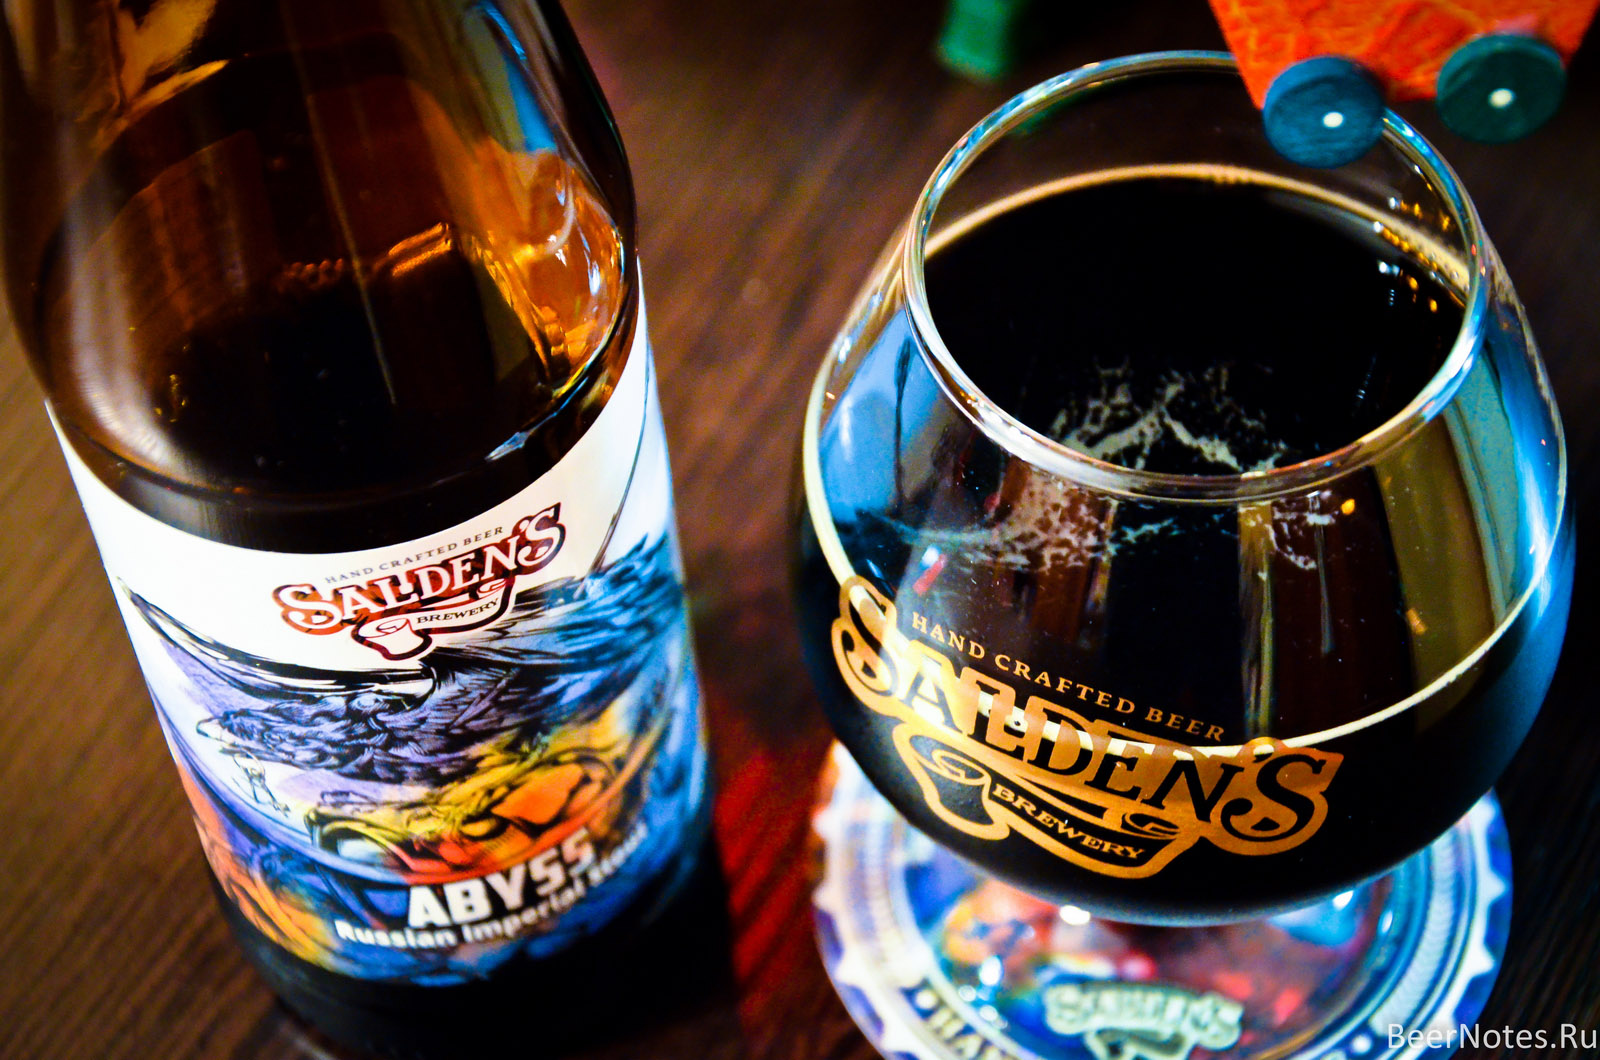 Abyss Russian Imperial Stout5